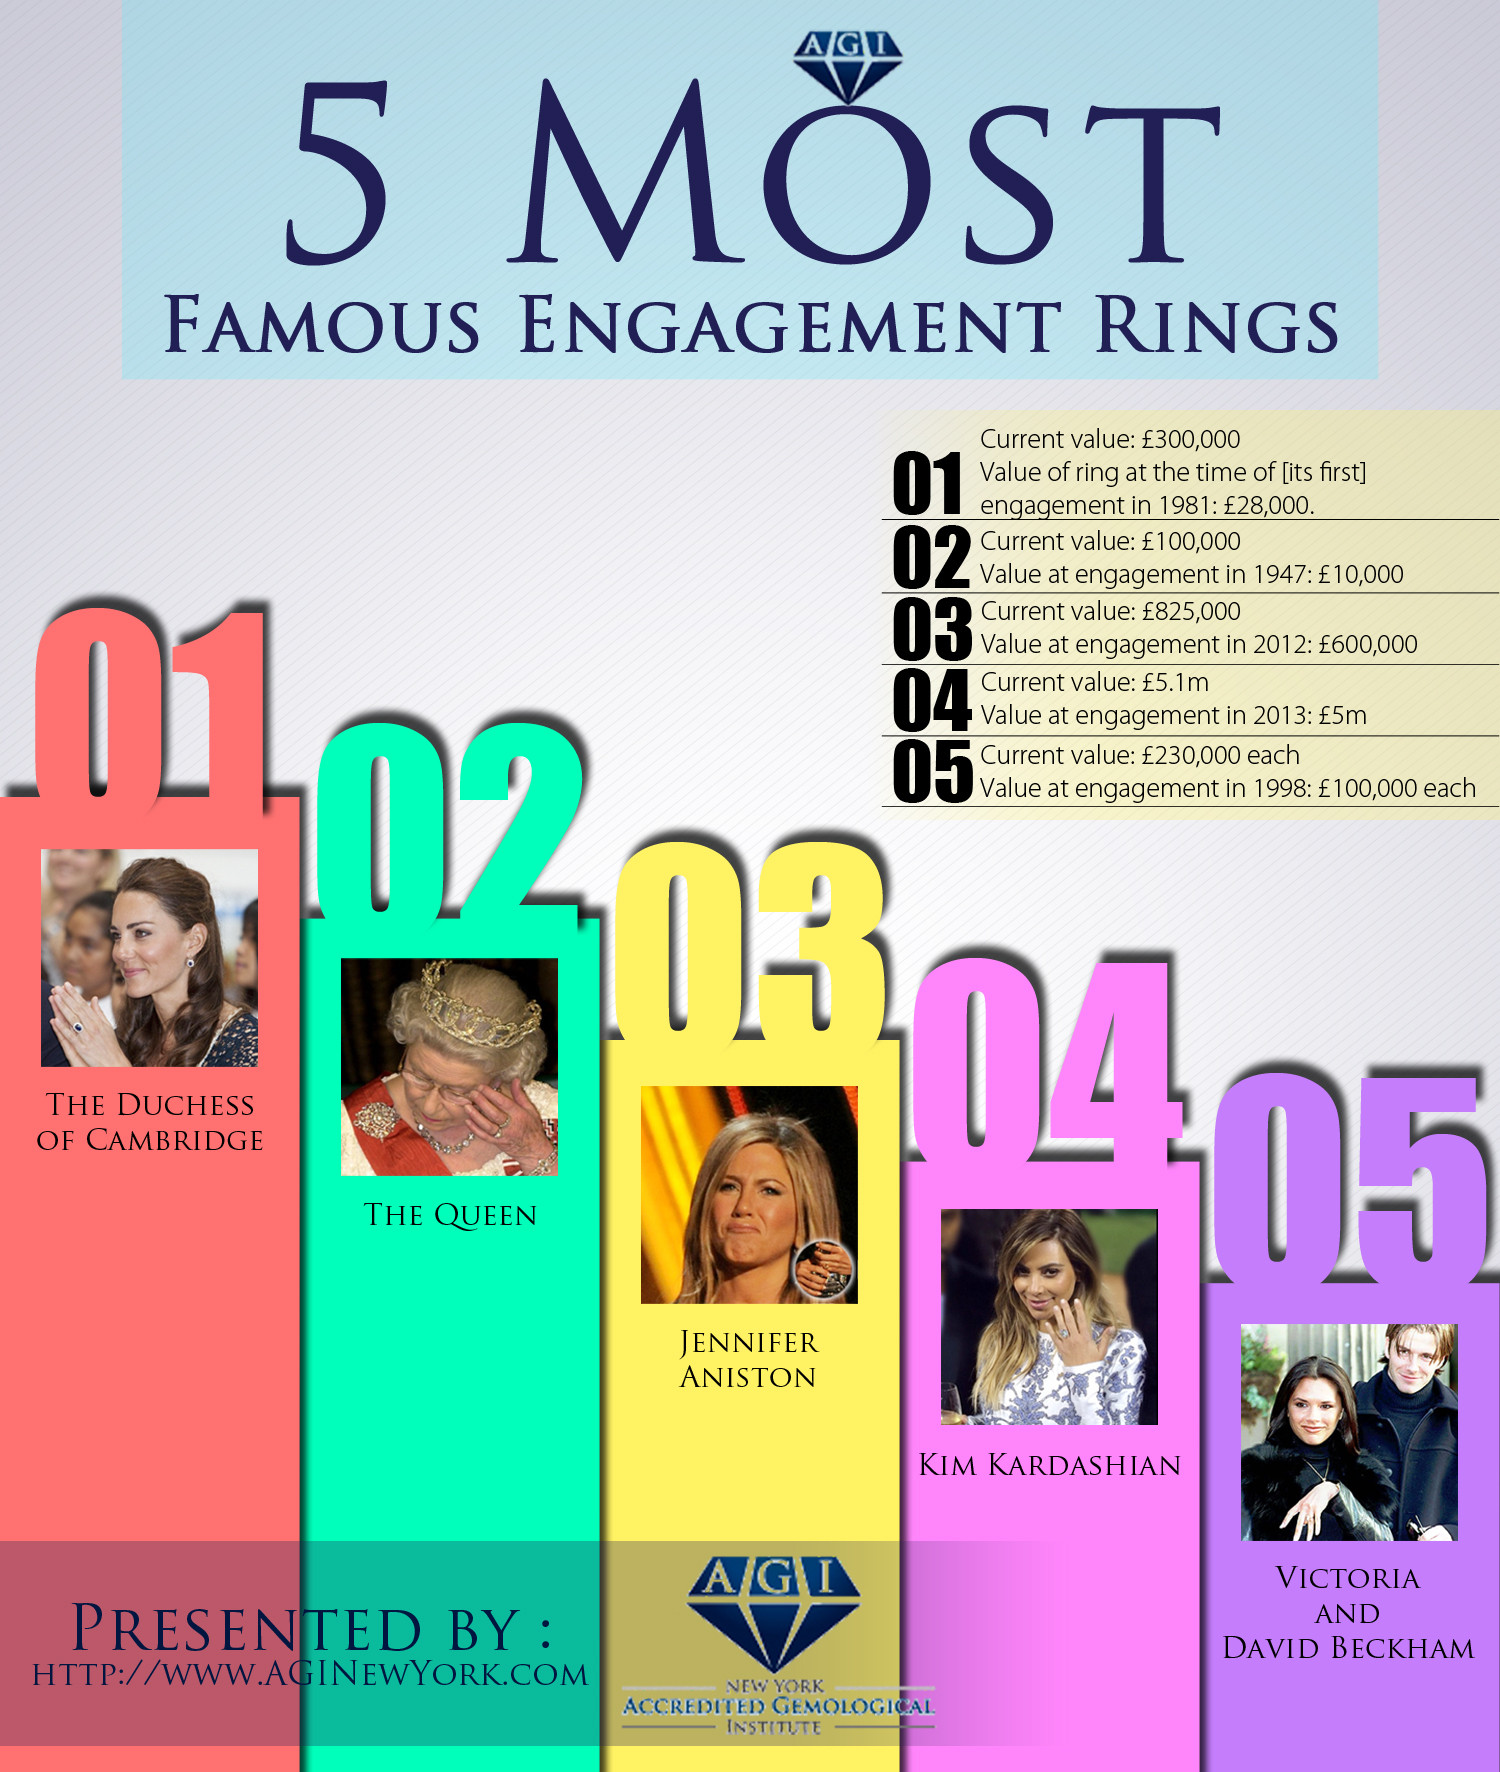 5 Most Famous Engagement Rings Infographic